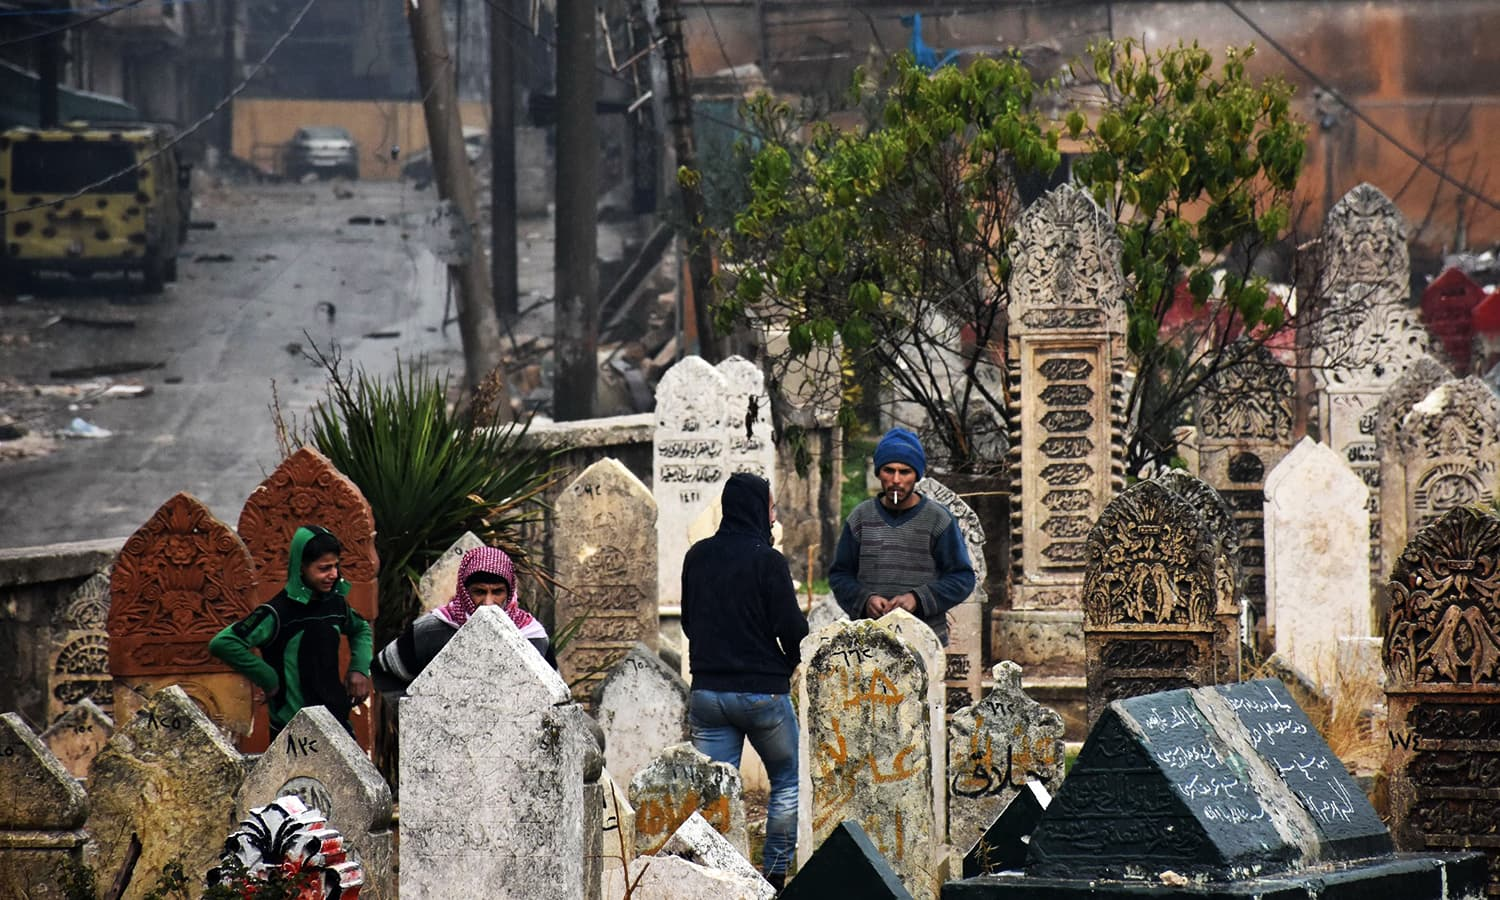 Syrian residents stand in a graveyard in Aleppo's Al-Kalasseh neighbourhood that was newly captured by pro-governments forces in the eastern part of the war torn city on December 13, 2016. ─ AFP